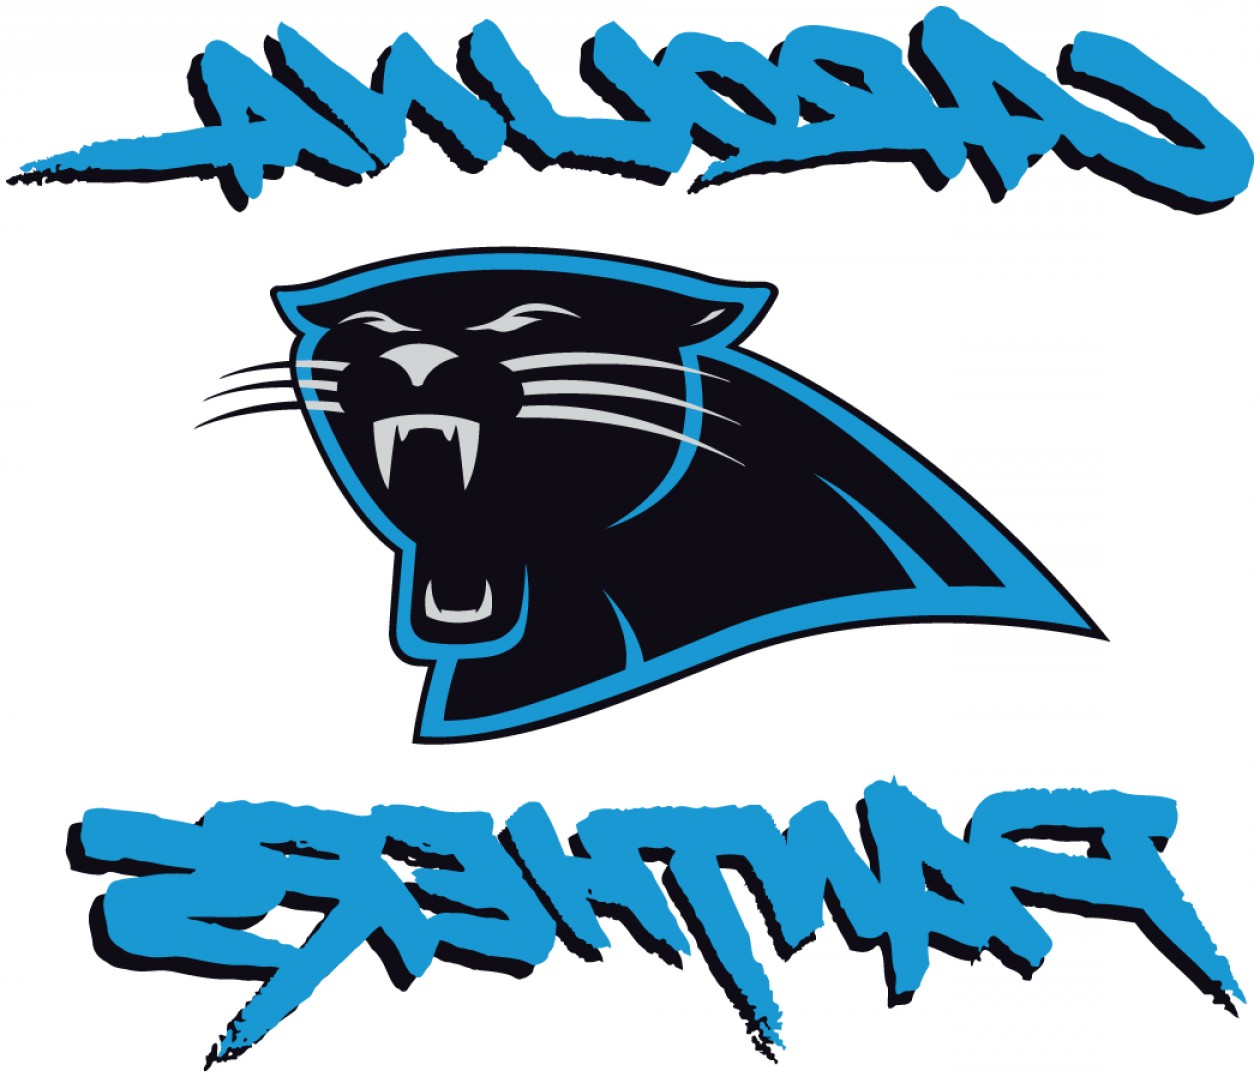 1260x1077 Delightful Carolina Panther Logo Panthers Wallpaper X For Hd P